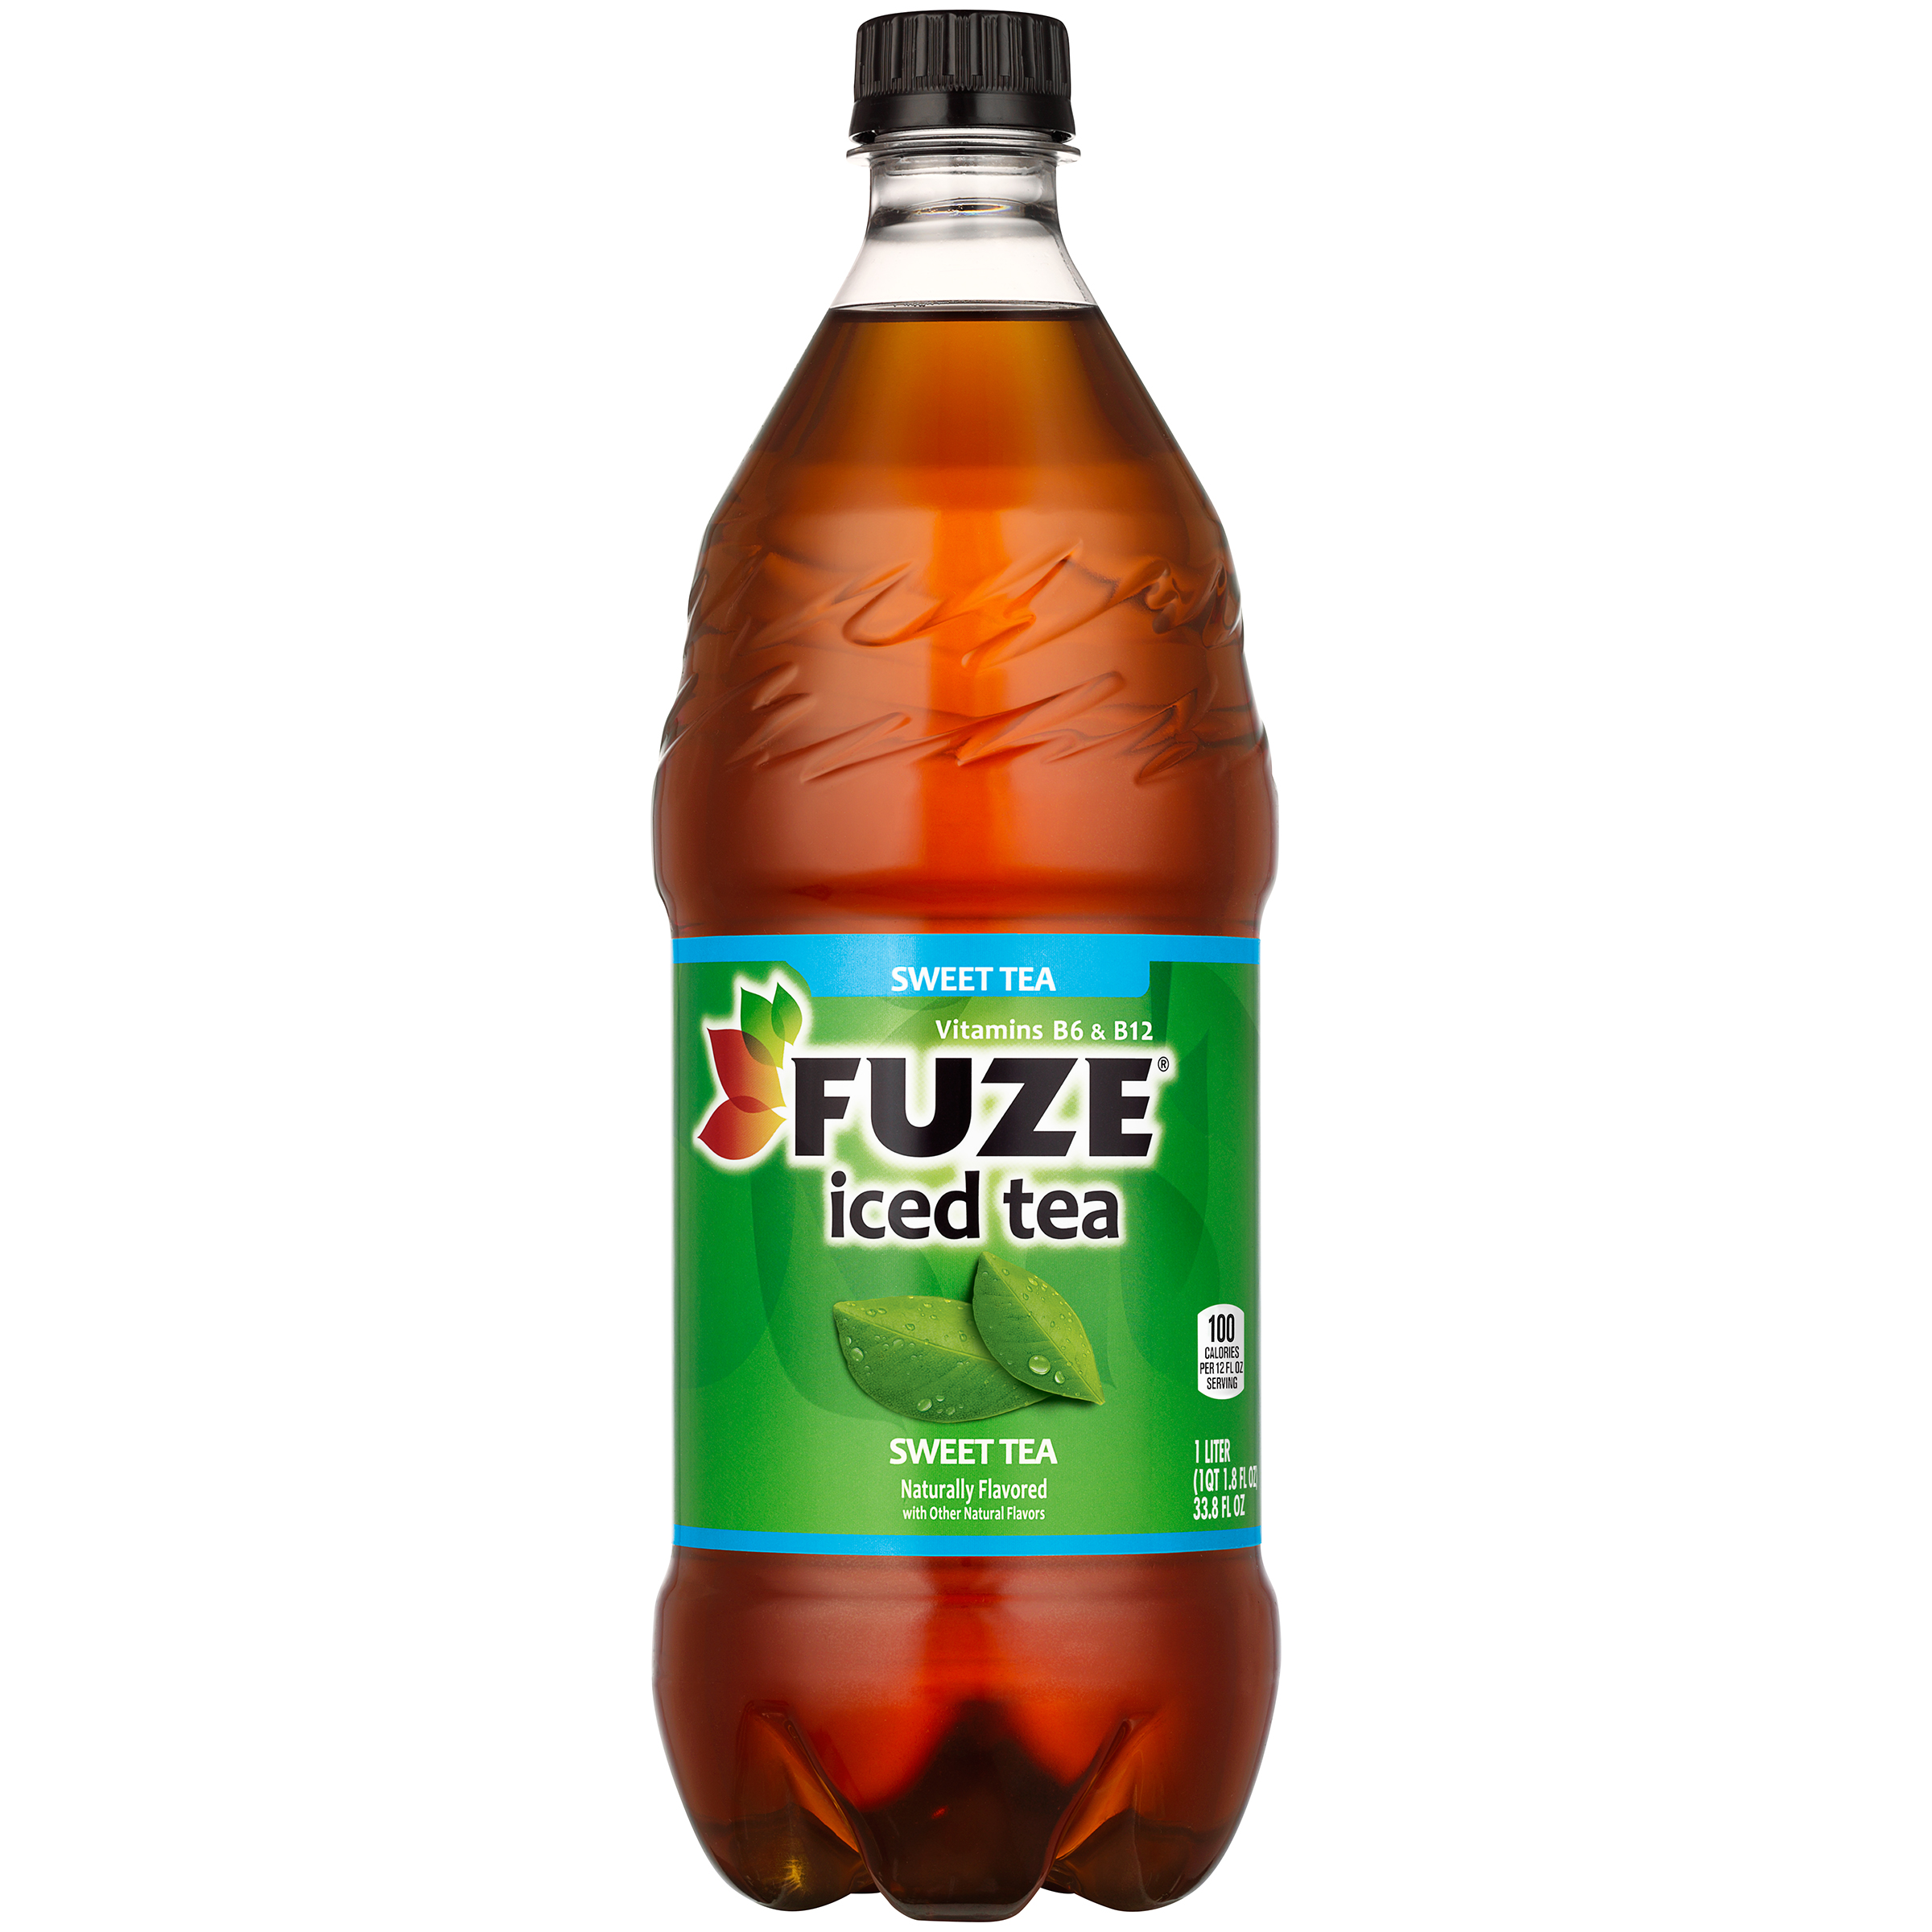 Fuze Tea Sweet Bottle, 1 Liter